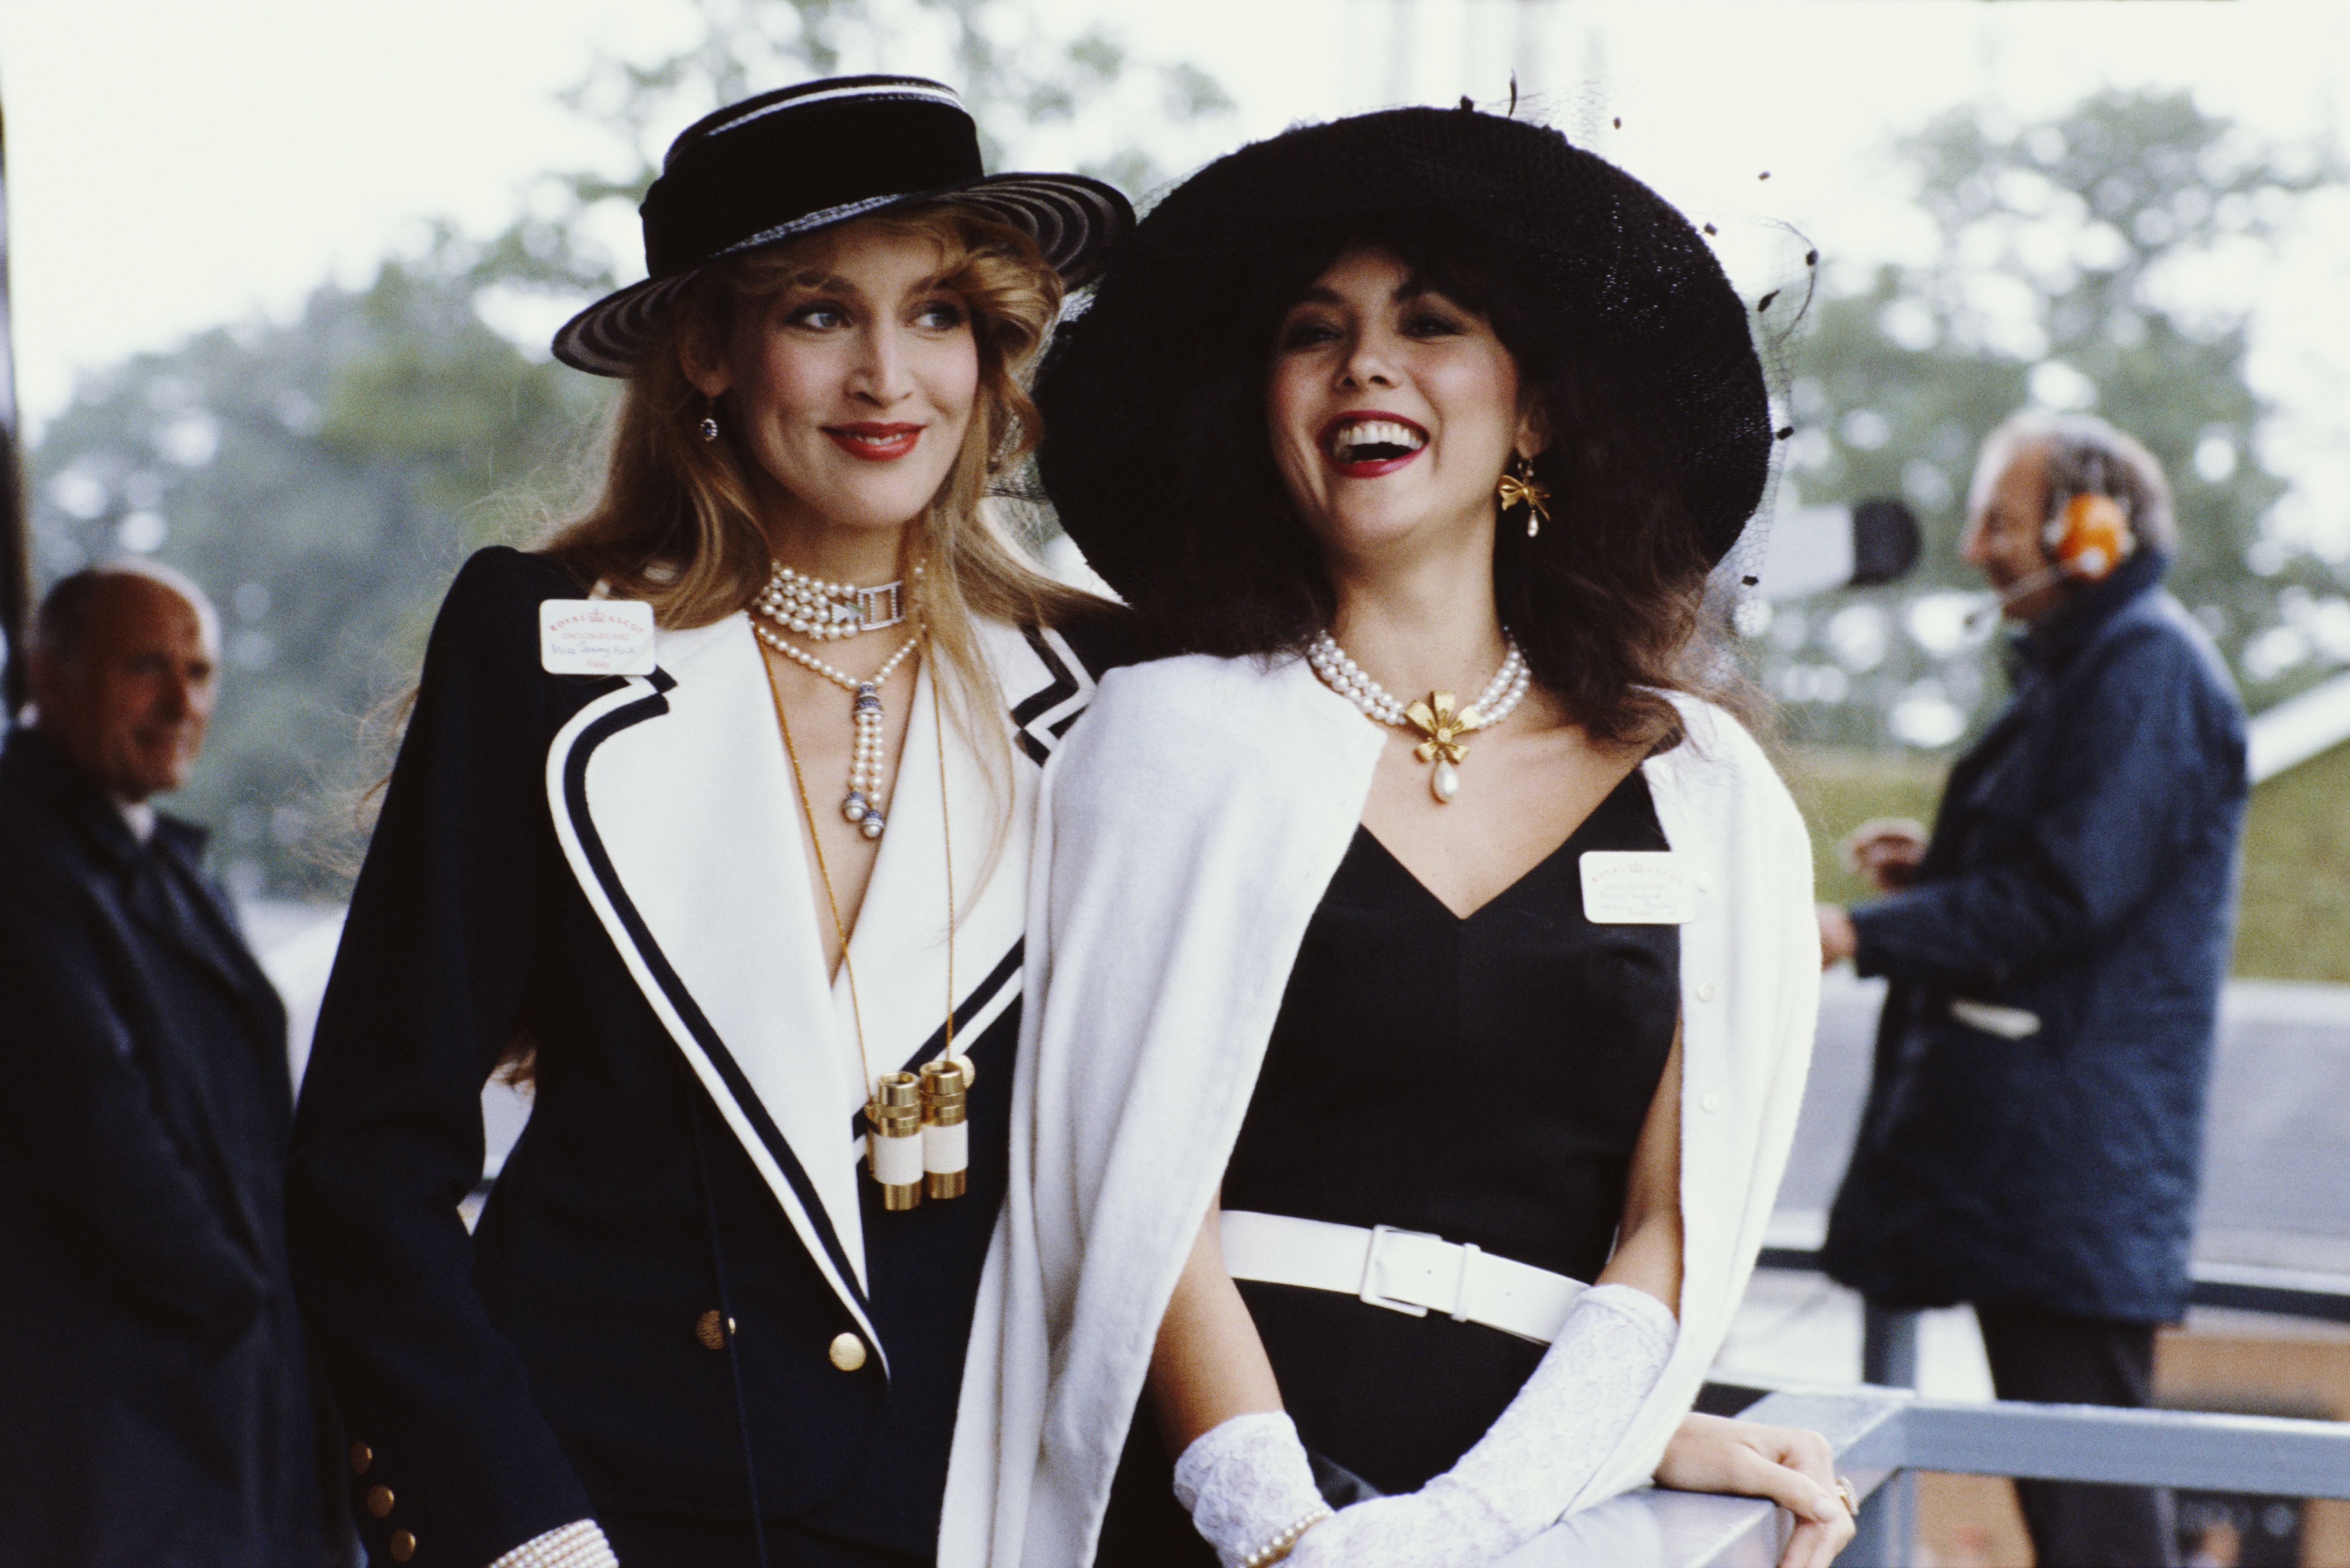 7efb8a4011f9 The Best of 1980s Fashion - Vintage 80s Outfits and Fashion Trends